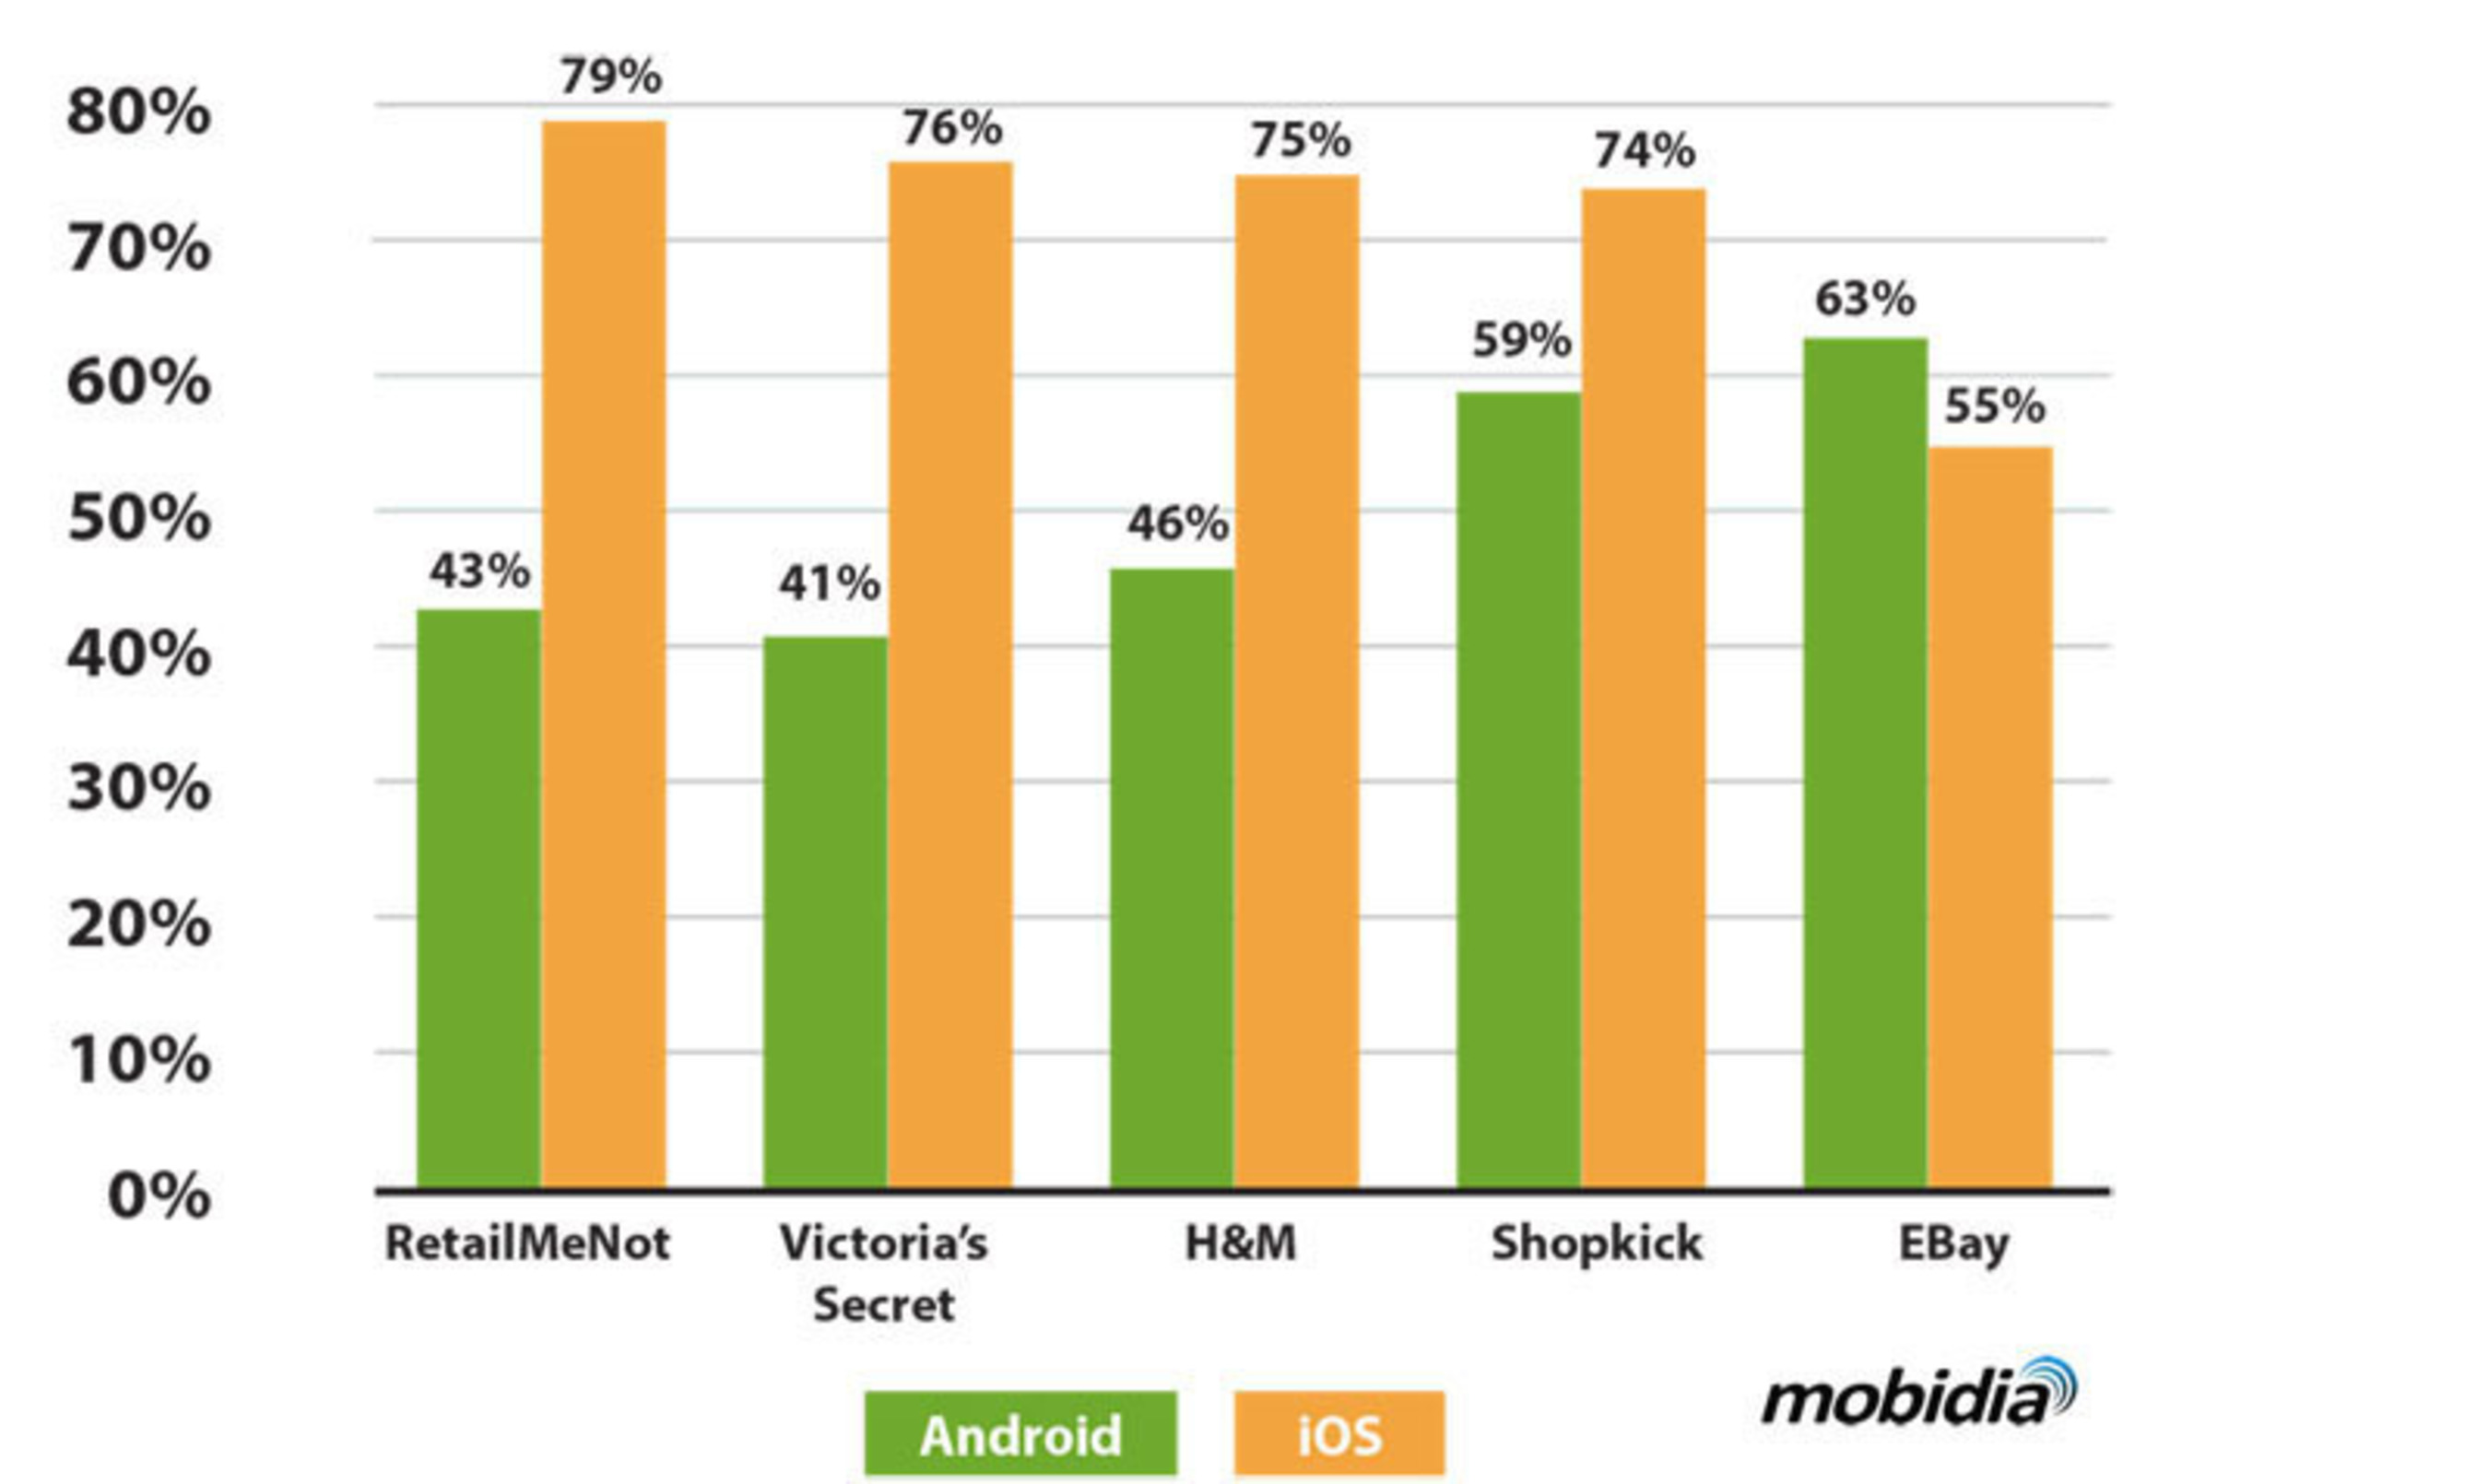 Customer Engagement of Selected Mobile Shopping Apps by OS, 2013. (PRNewsFoto/Mobidia Technology, Inc.) (PRNewsFoto/MOBIDIA TECHNOLOGY, INC.)